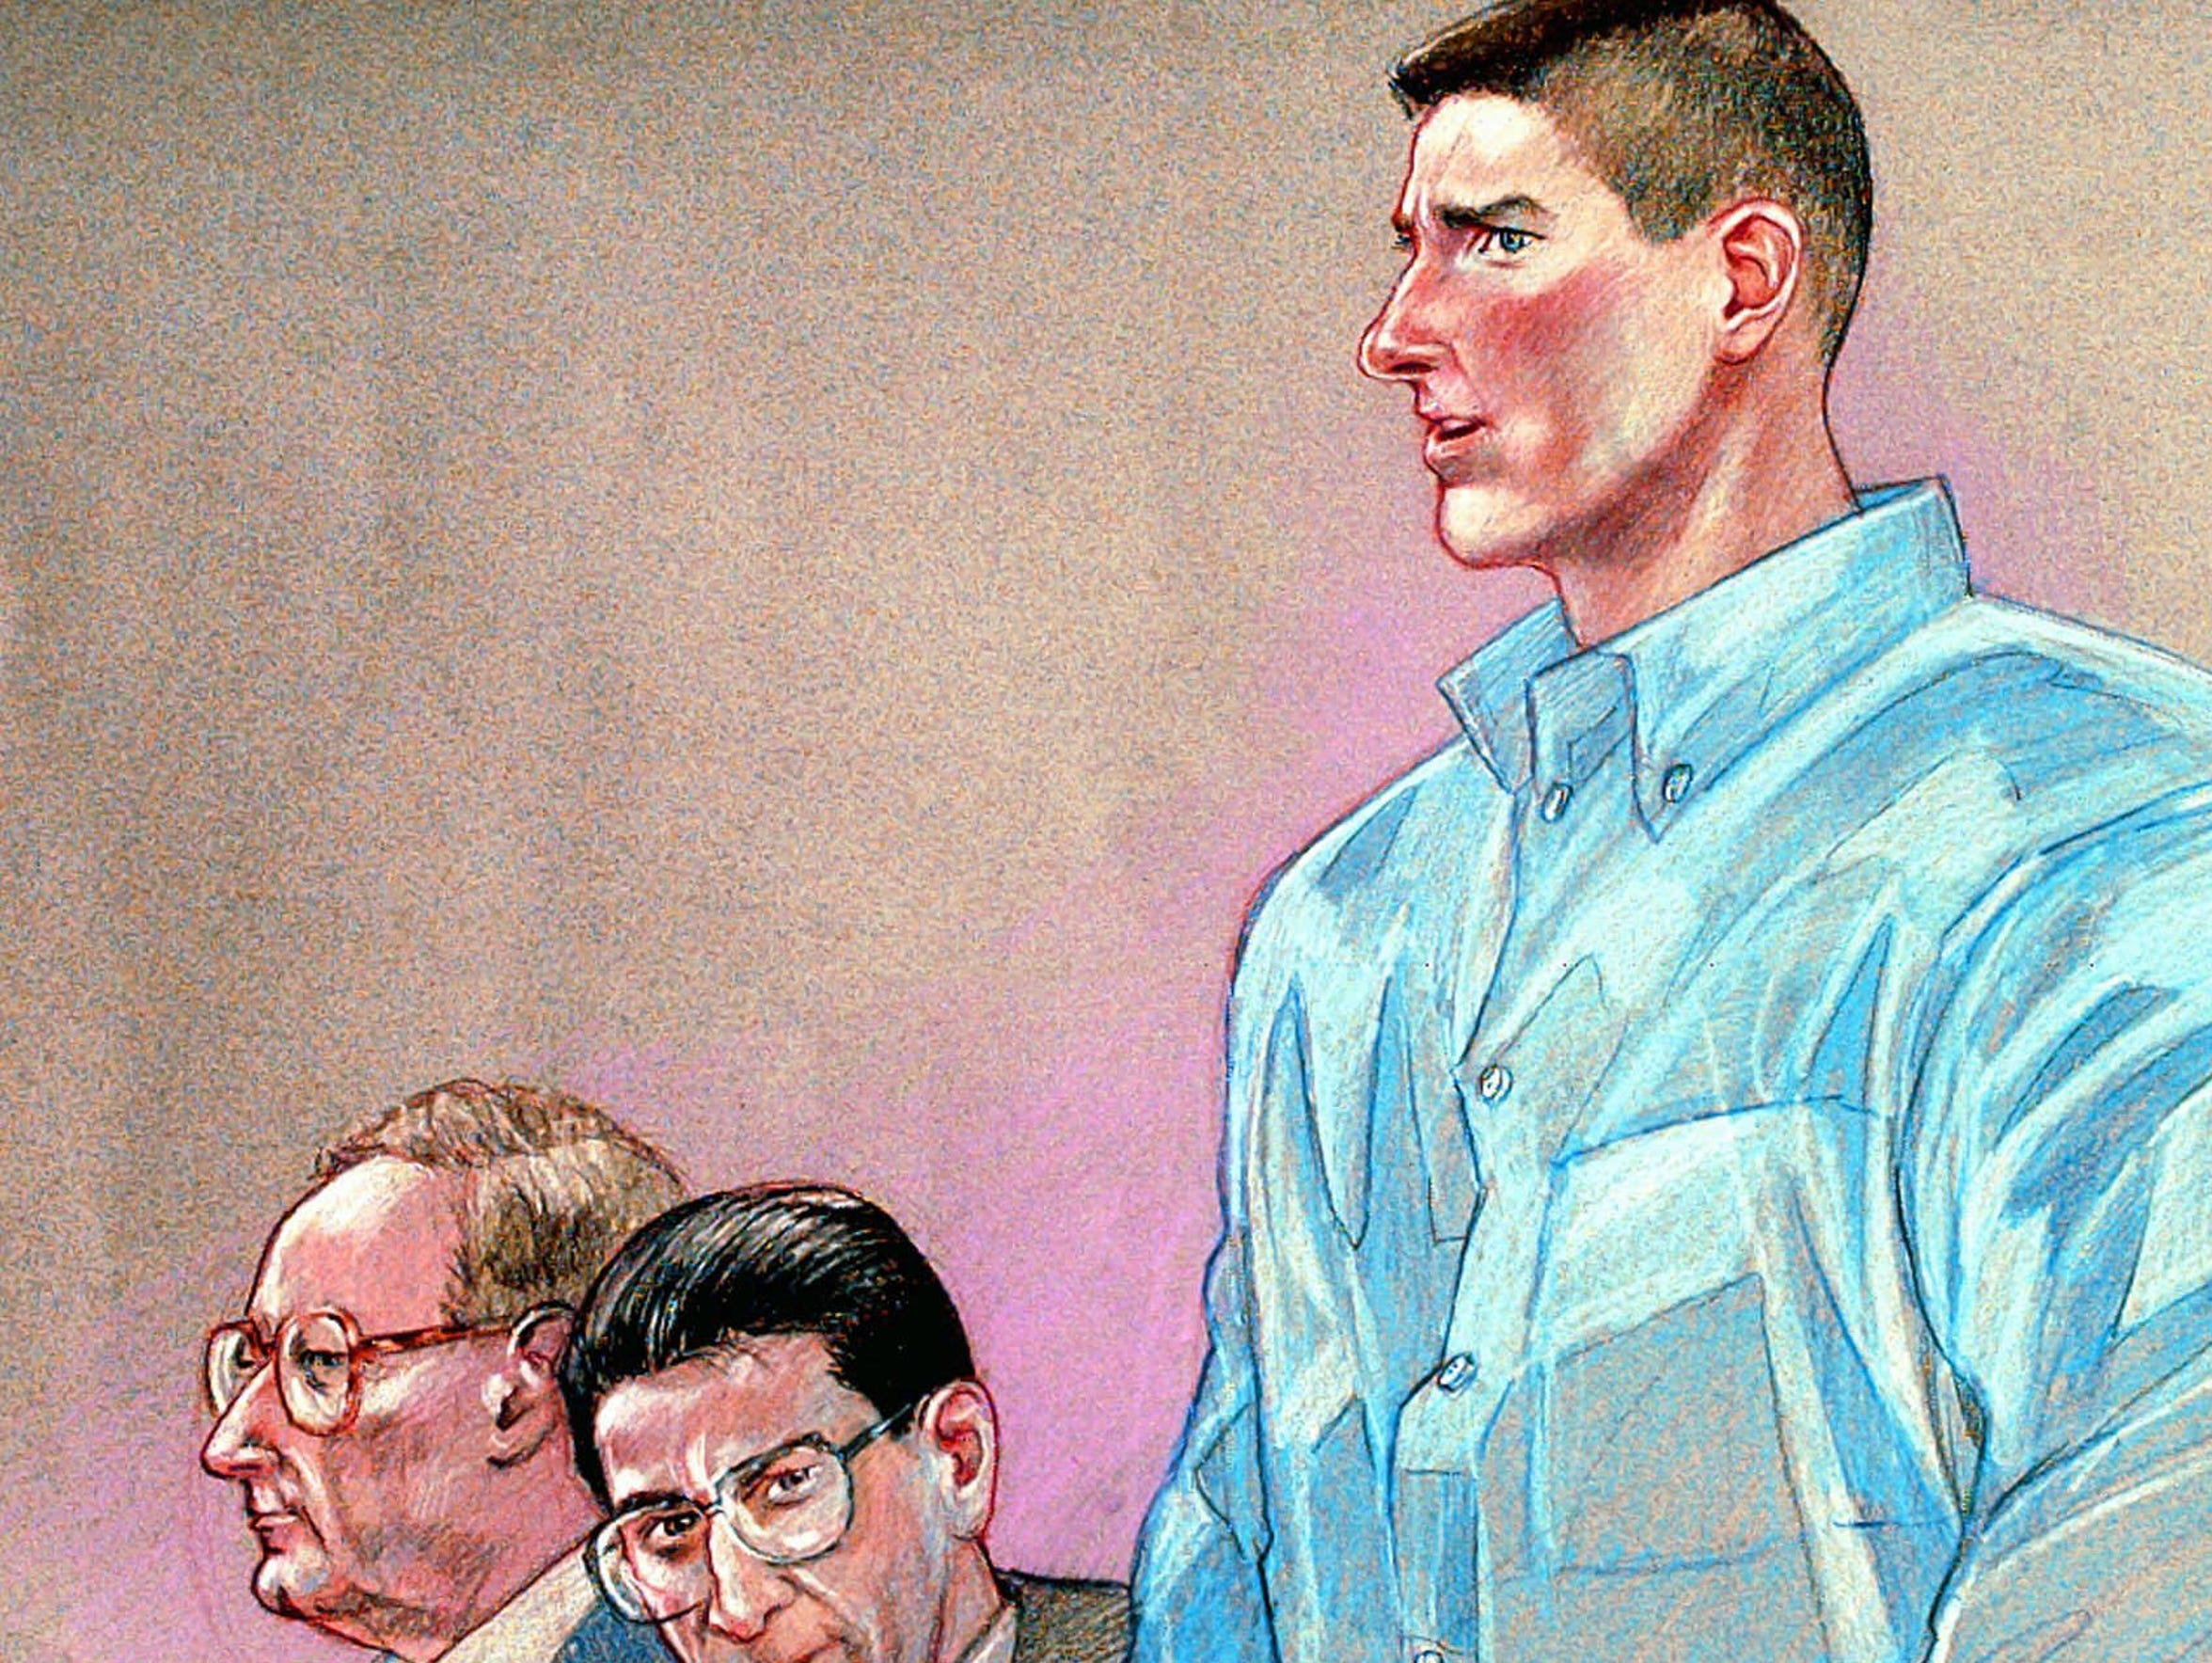 Timothy McVeigh addresses the court at his trial in